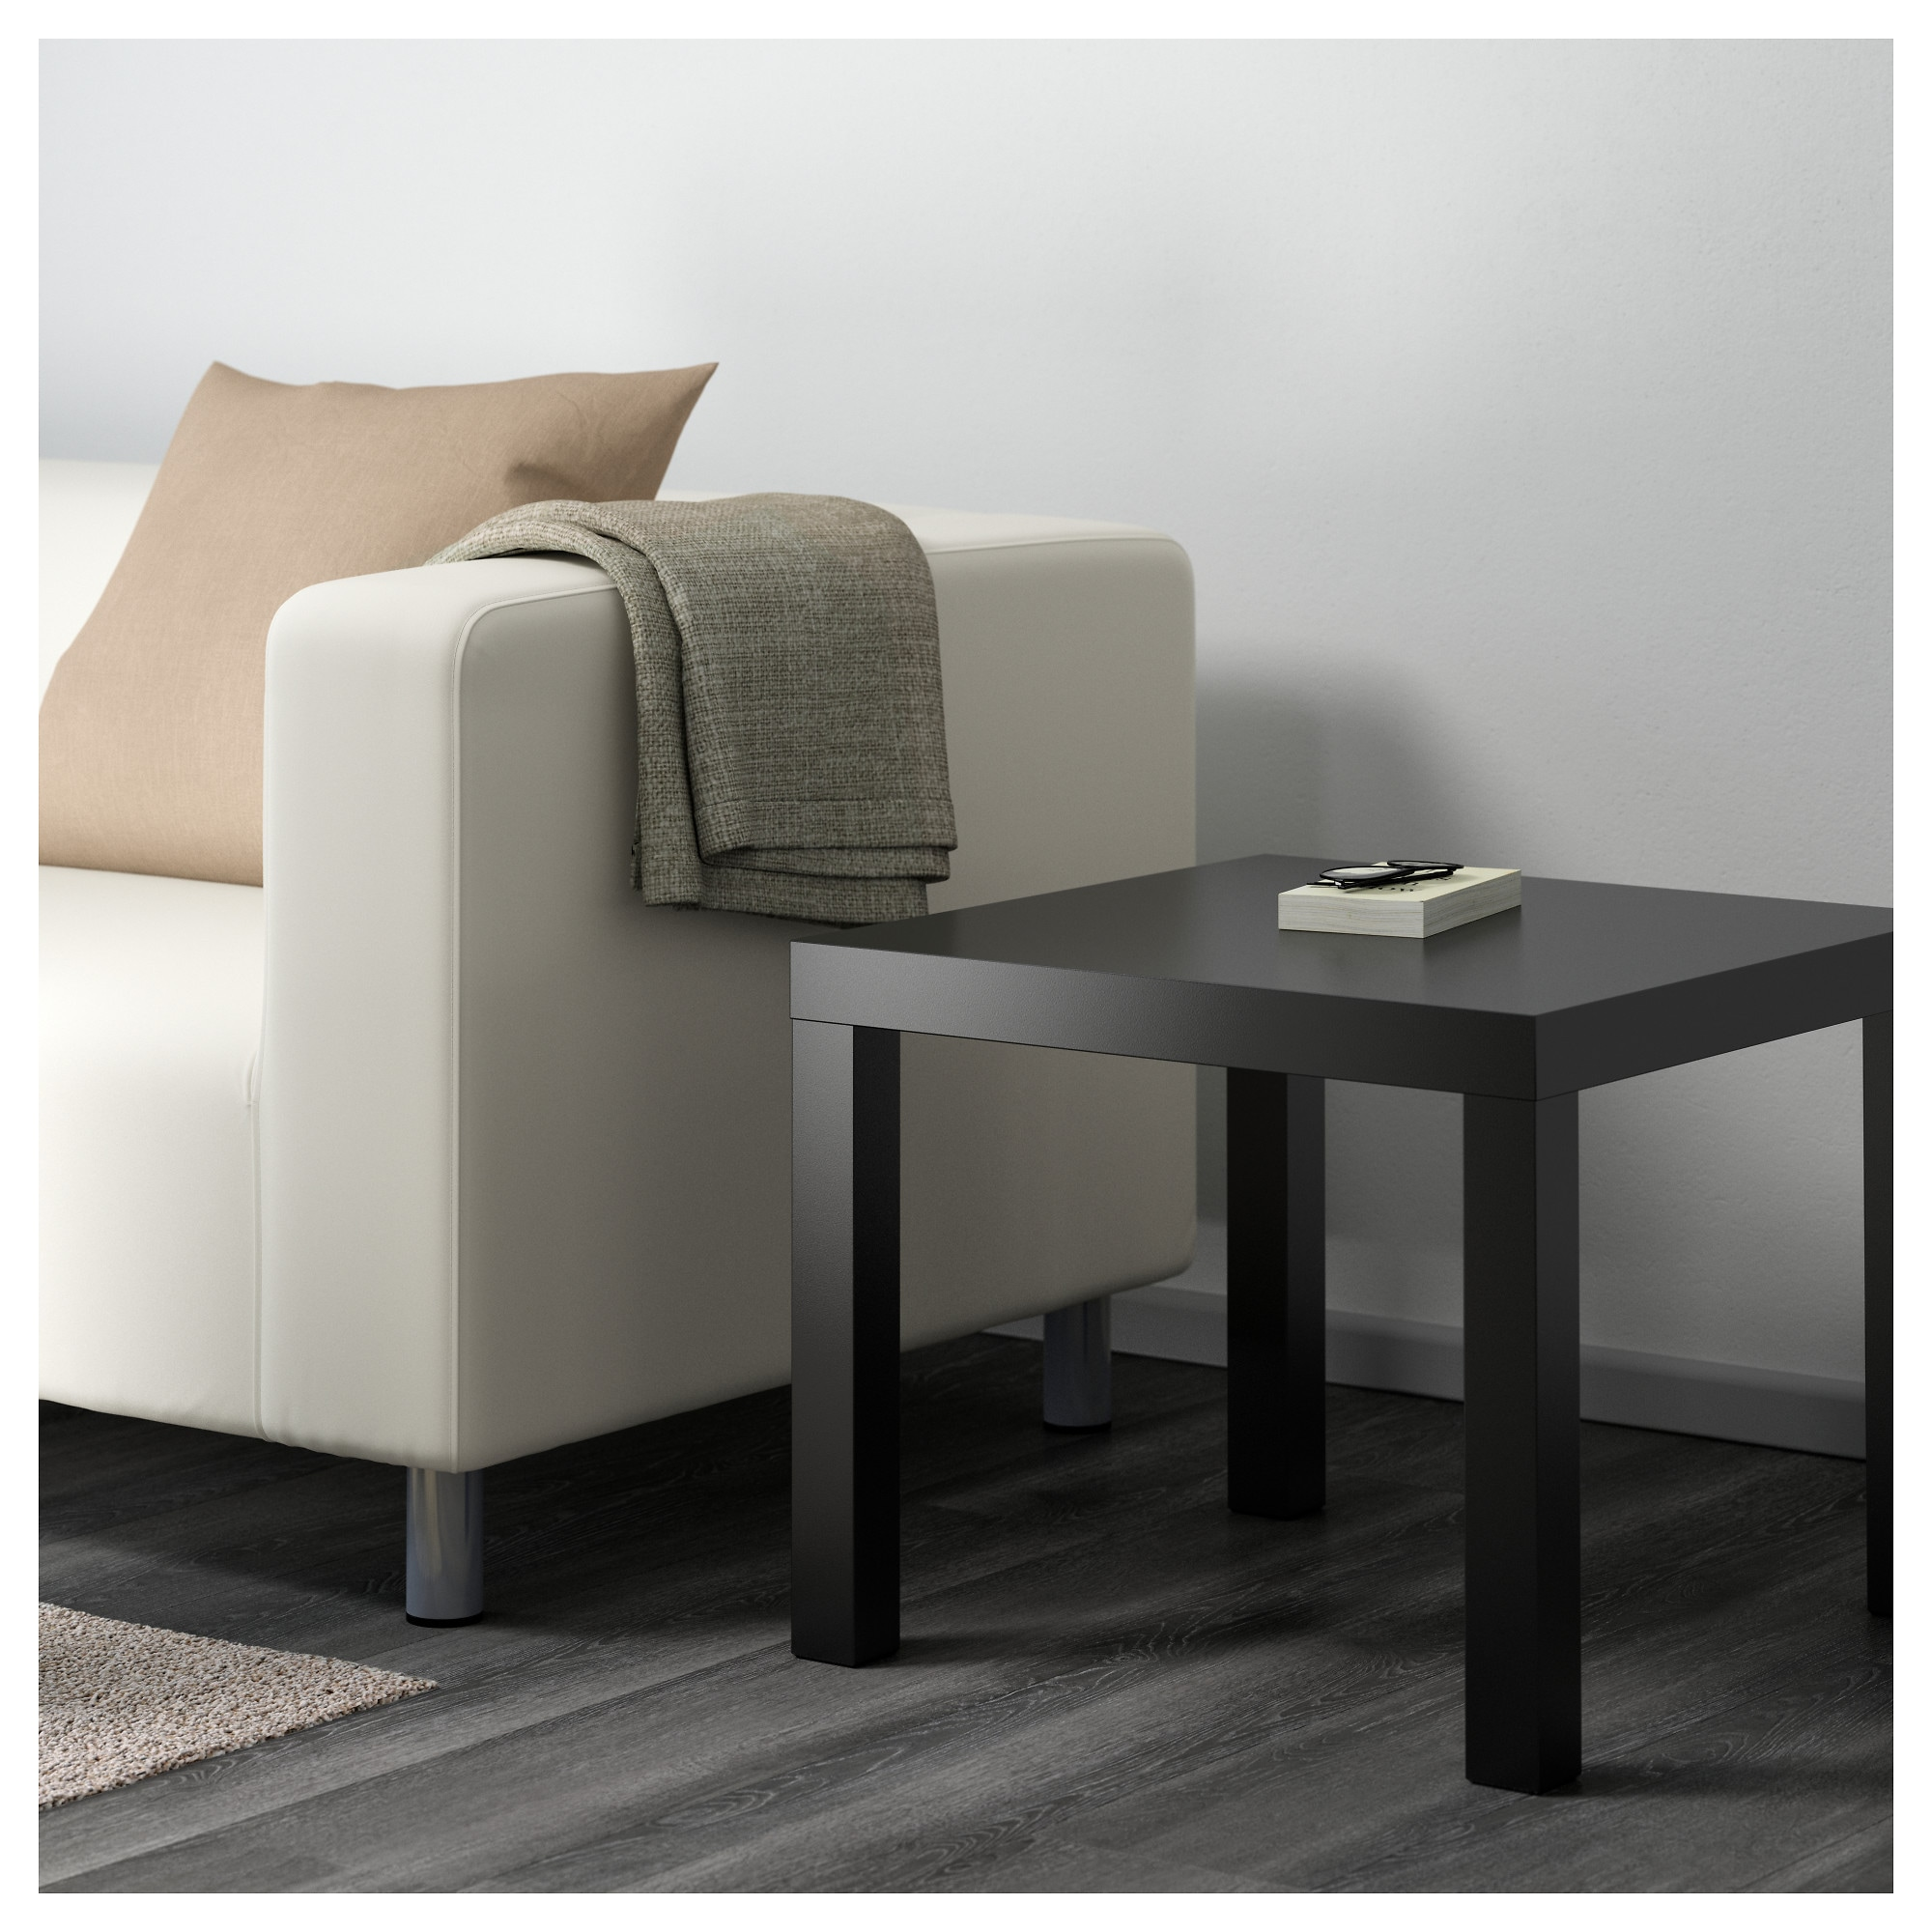 cheap side tables for living room.  LACK Side table birch effect 21 5 8x21 8 IKEA